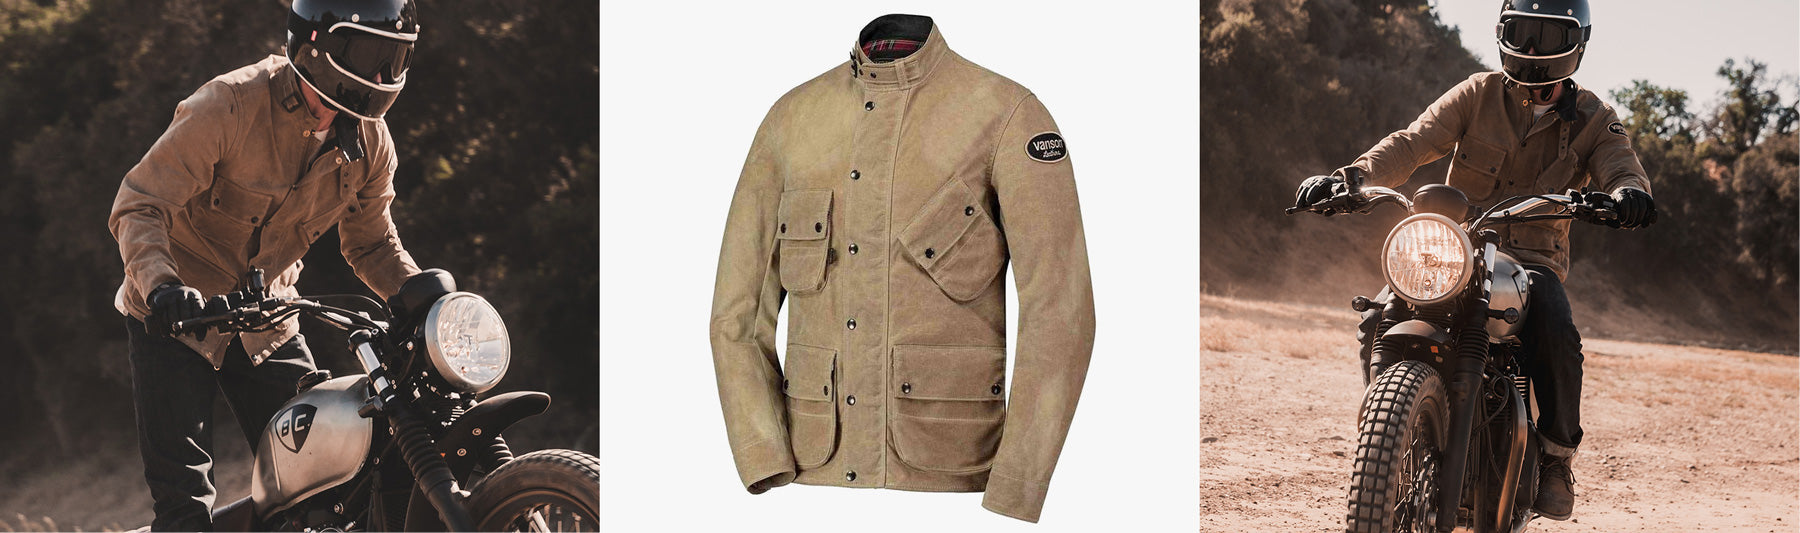 Vanson Stormer Waxed Cotton Jacket Available From British Customs